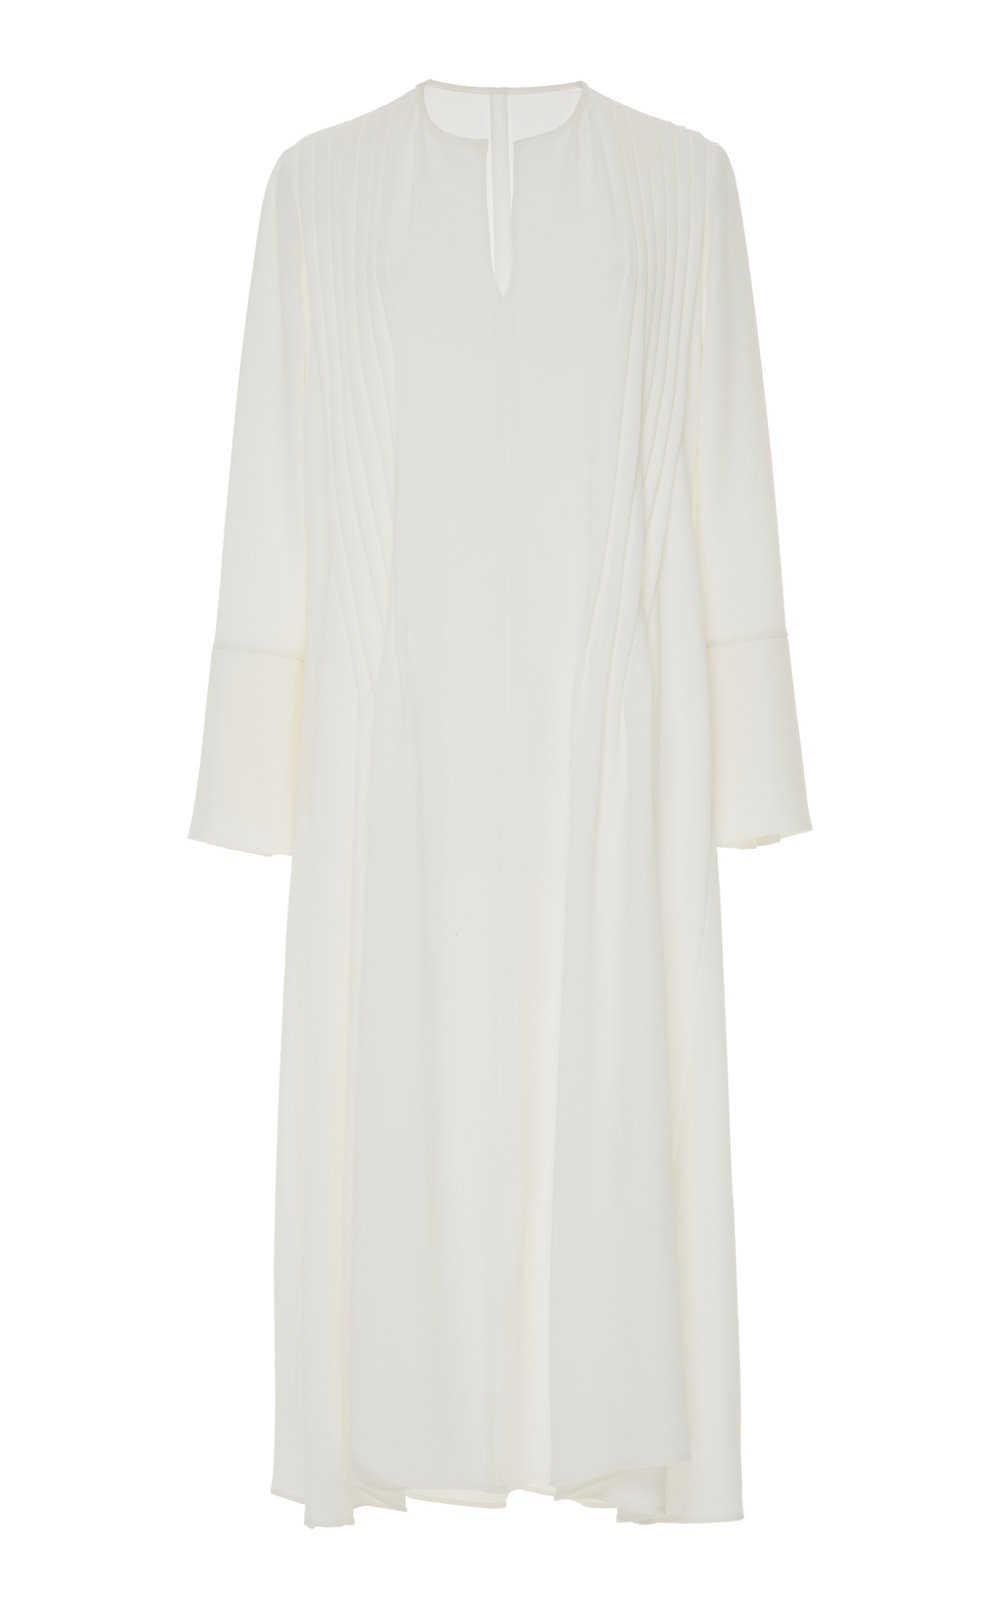 Cala Long Sleeve Dress - IVORY  A simple yet chic day dress with long sleeves and rounded neckline. Front pleats add volume and flare, creating a slight A-lined shape.